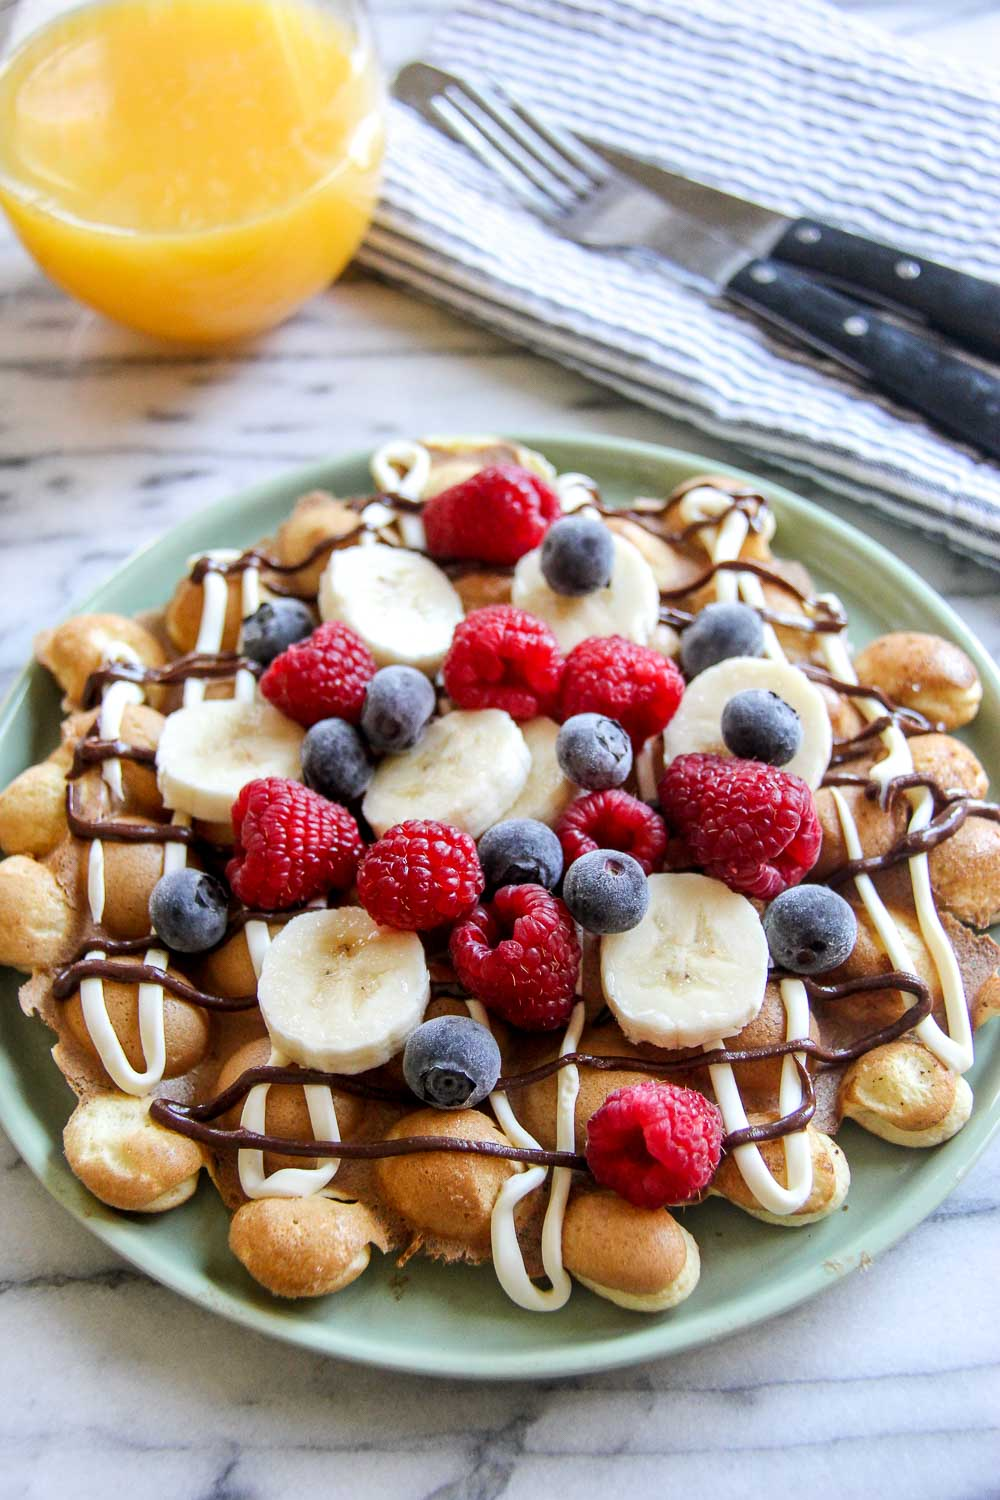 I love eating waffles for any time of the day and this Breakfast Egg Waffle is my all-time favorite. All that you love about breakfast, in an easy and fun form!